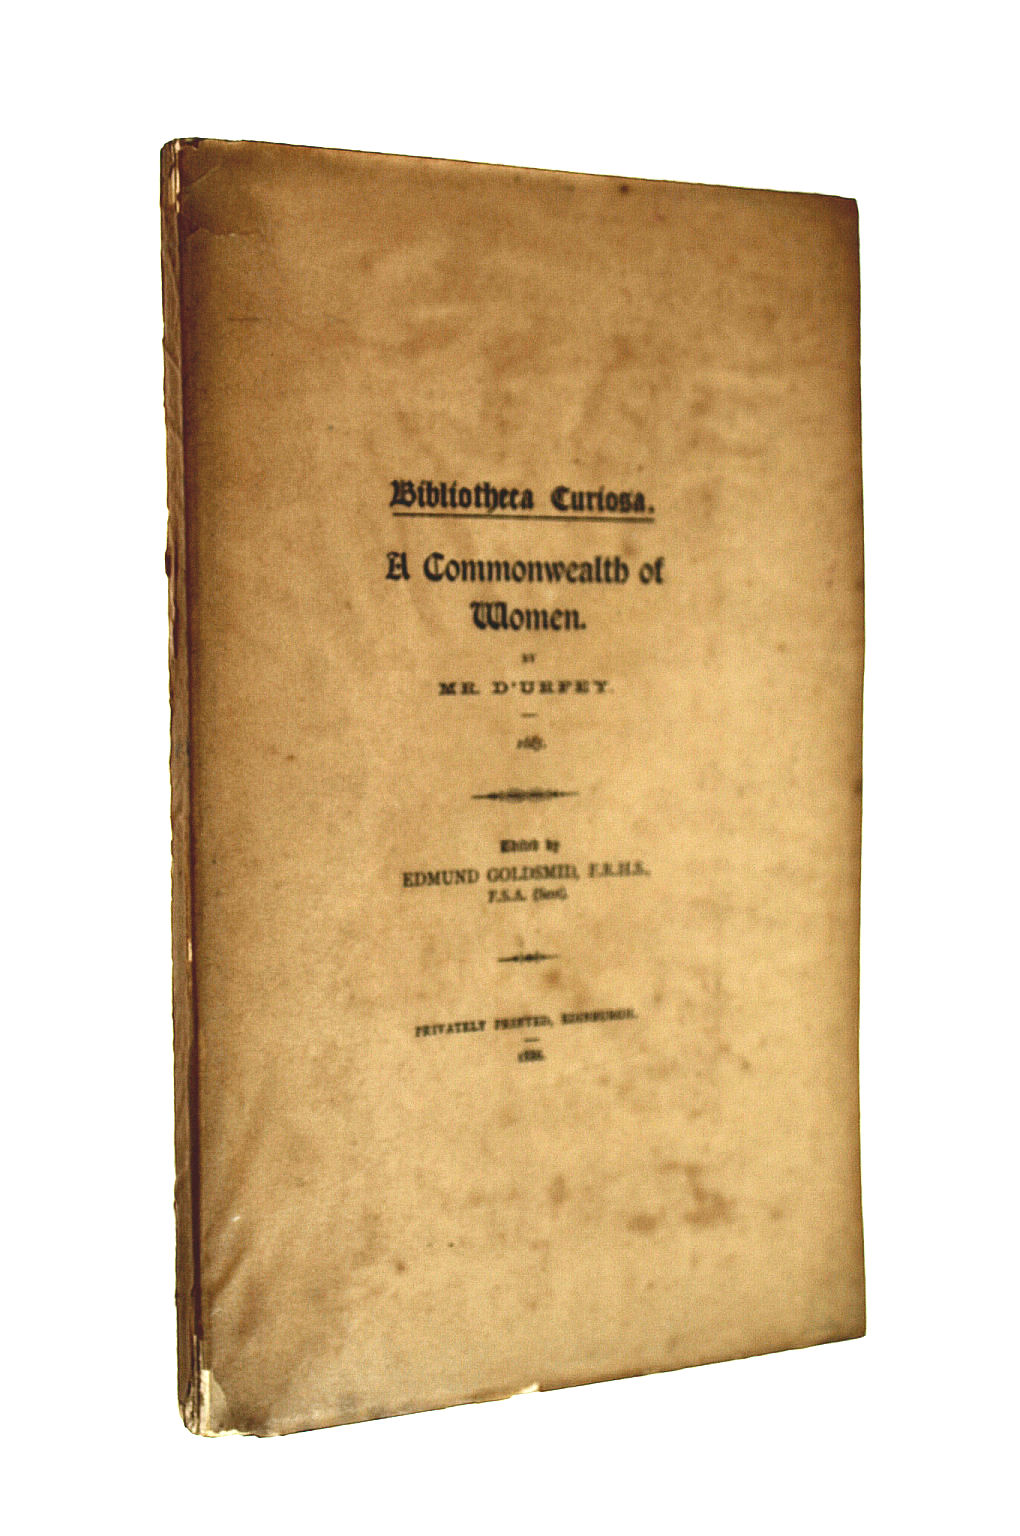 Image for A Commonwealth of Women (Bibliotheca Curiosa)